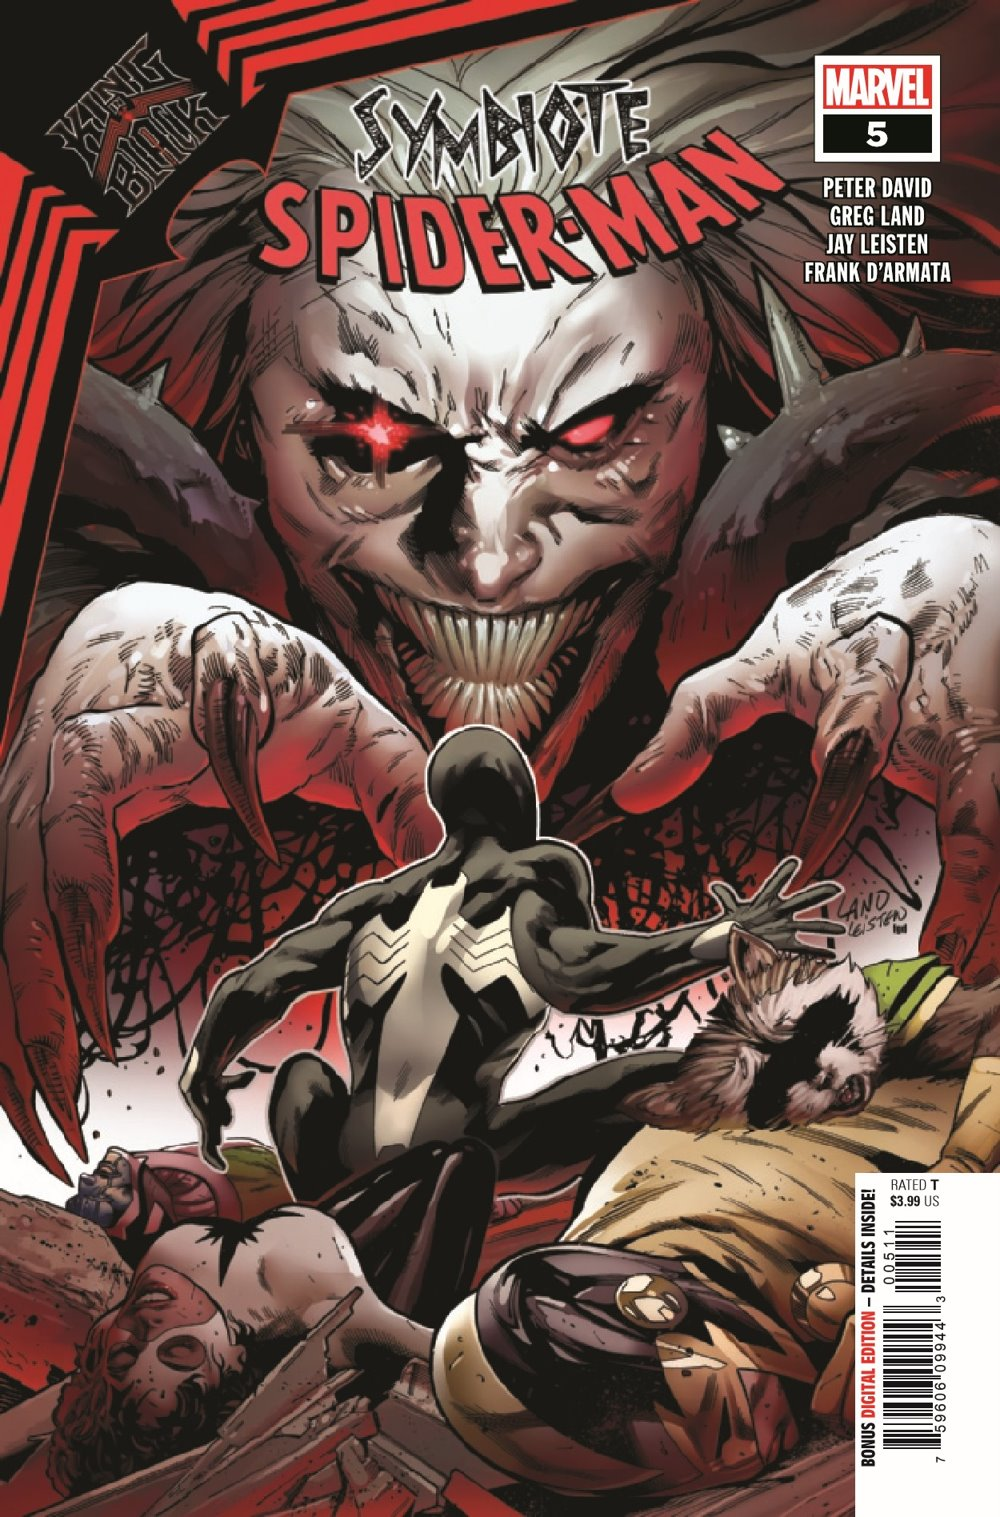 SYMBIOTESMKIB2020005_Preview-1 ComicList Previews: SYMBIOTE SPIDER-MAN KING IN BLACK #5 (OF 5)